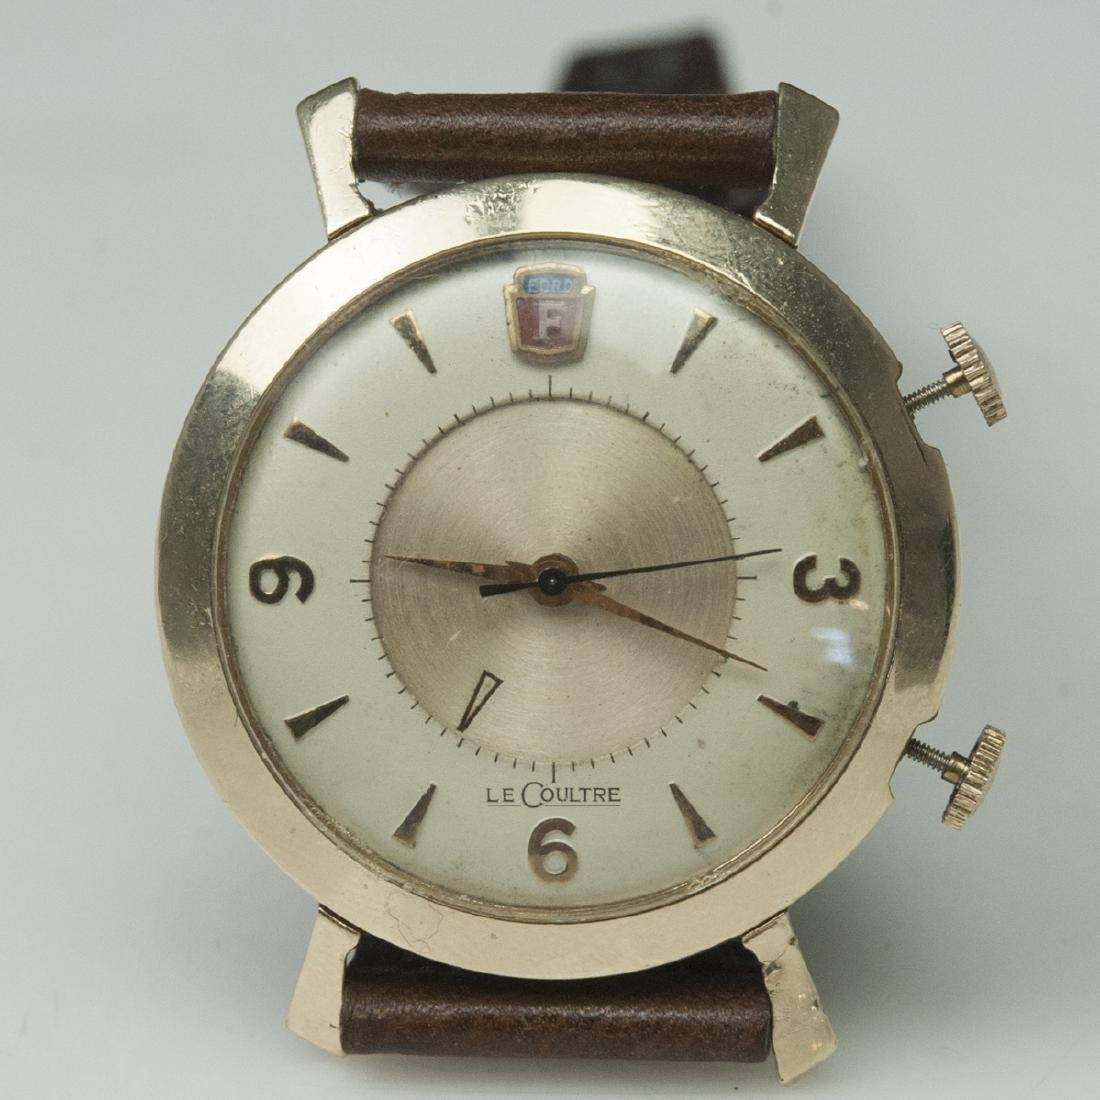 Vintage Jaeger Lecoultre Memovox Henry Ford Watch